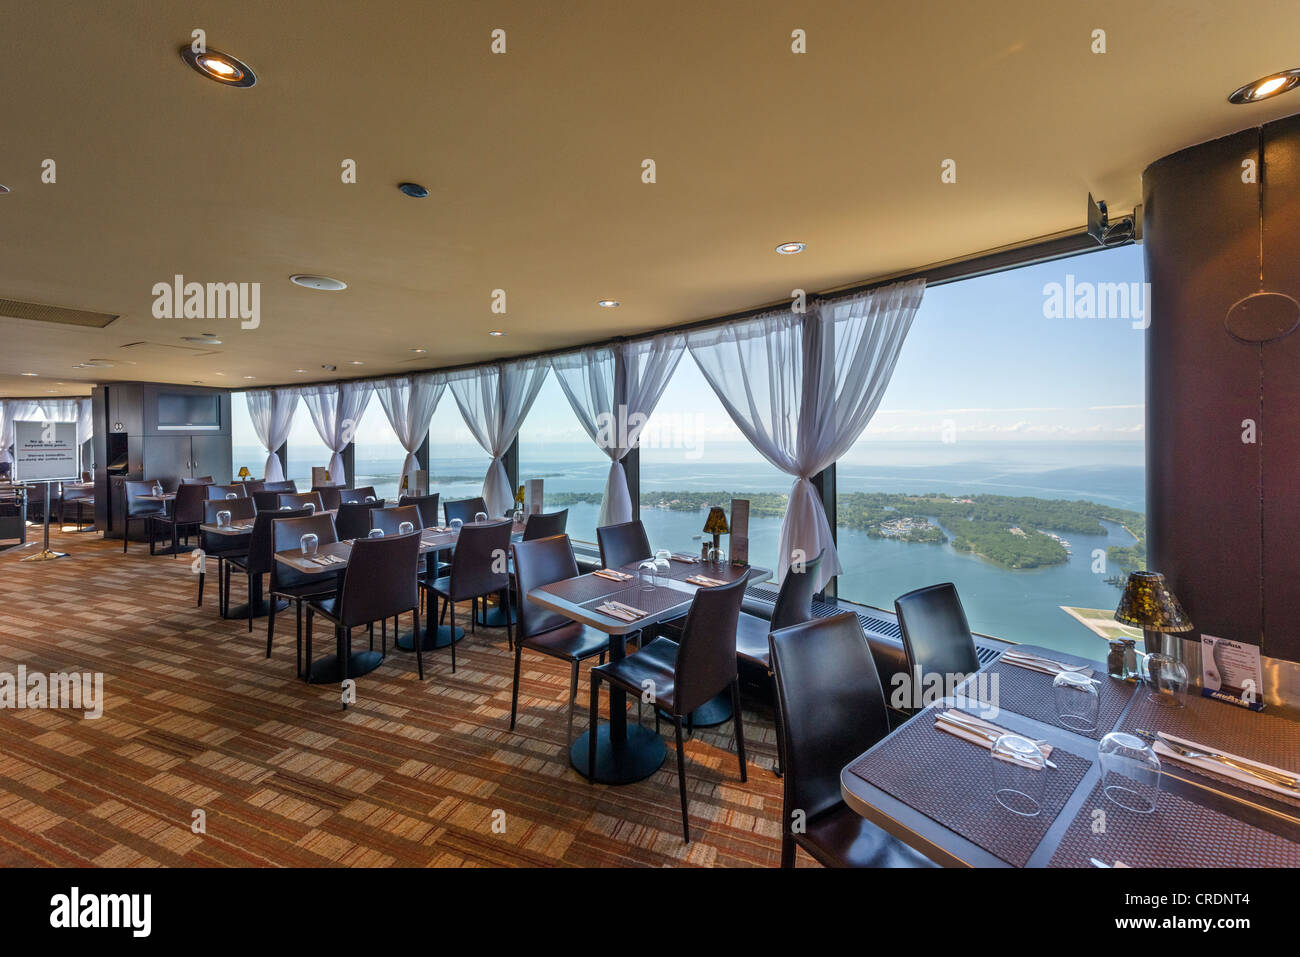 View over Lake Ontario from the Horizons Restaurant on the Lookout Level at the top of the CN Tower, Toronto, Ontario, - Stock Image